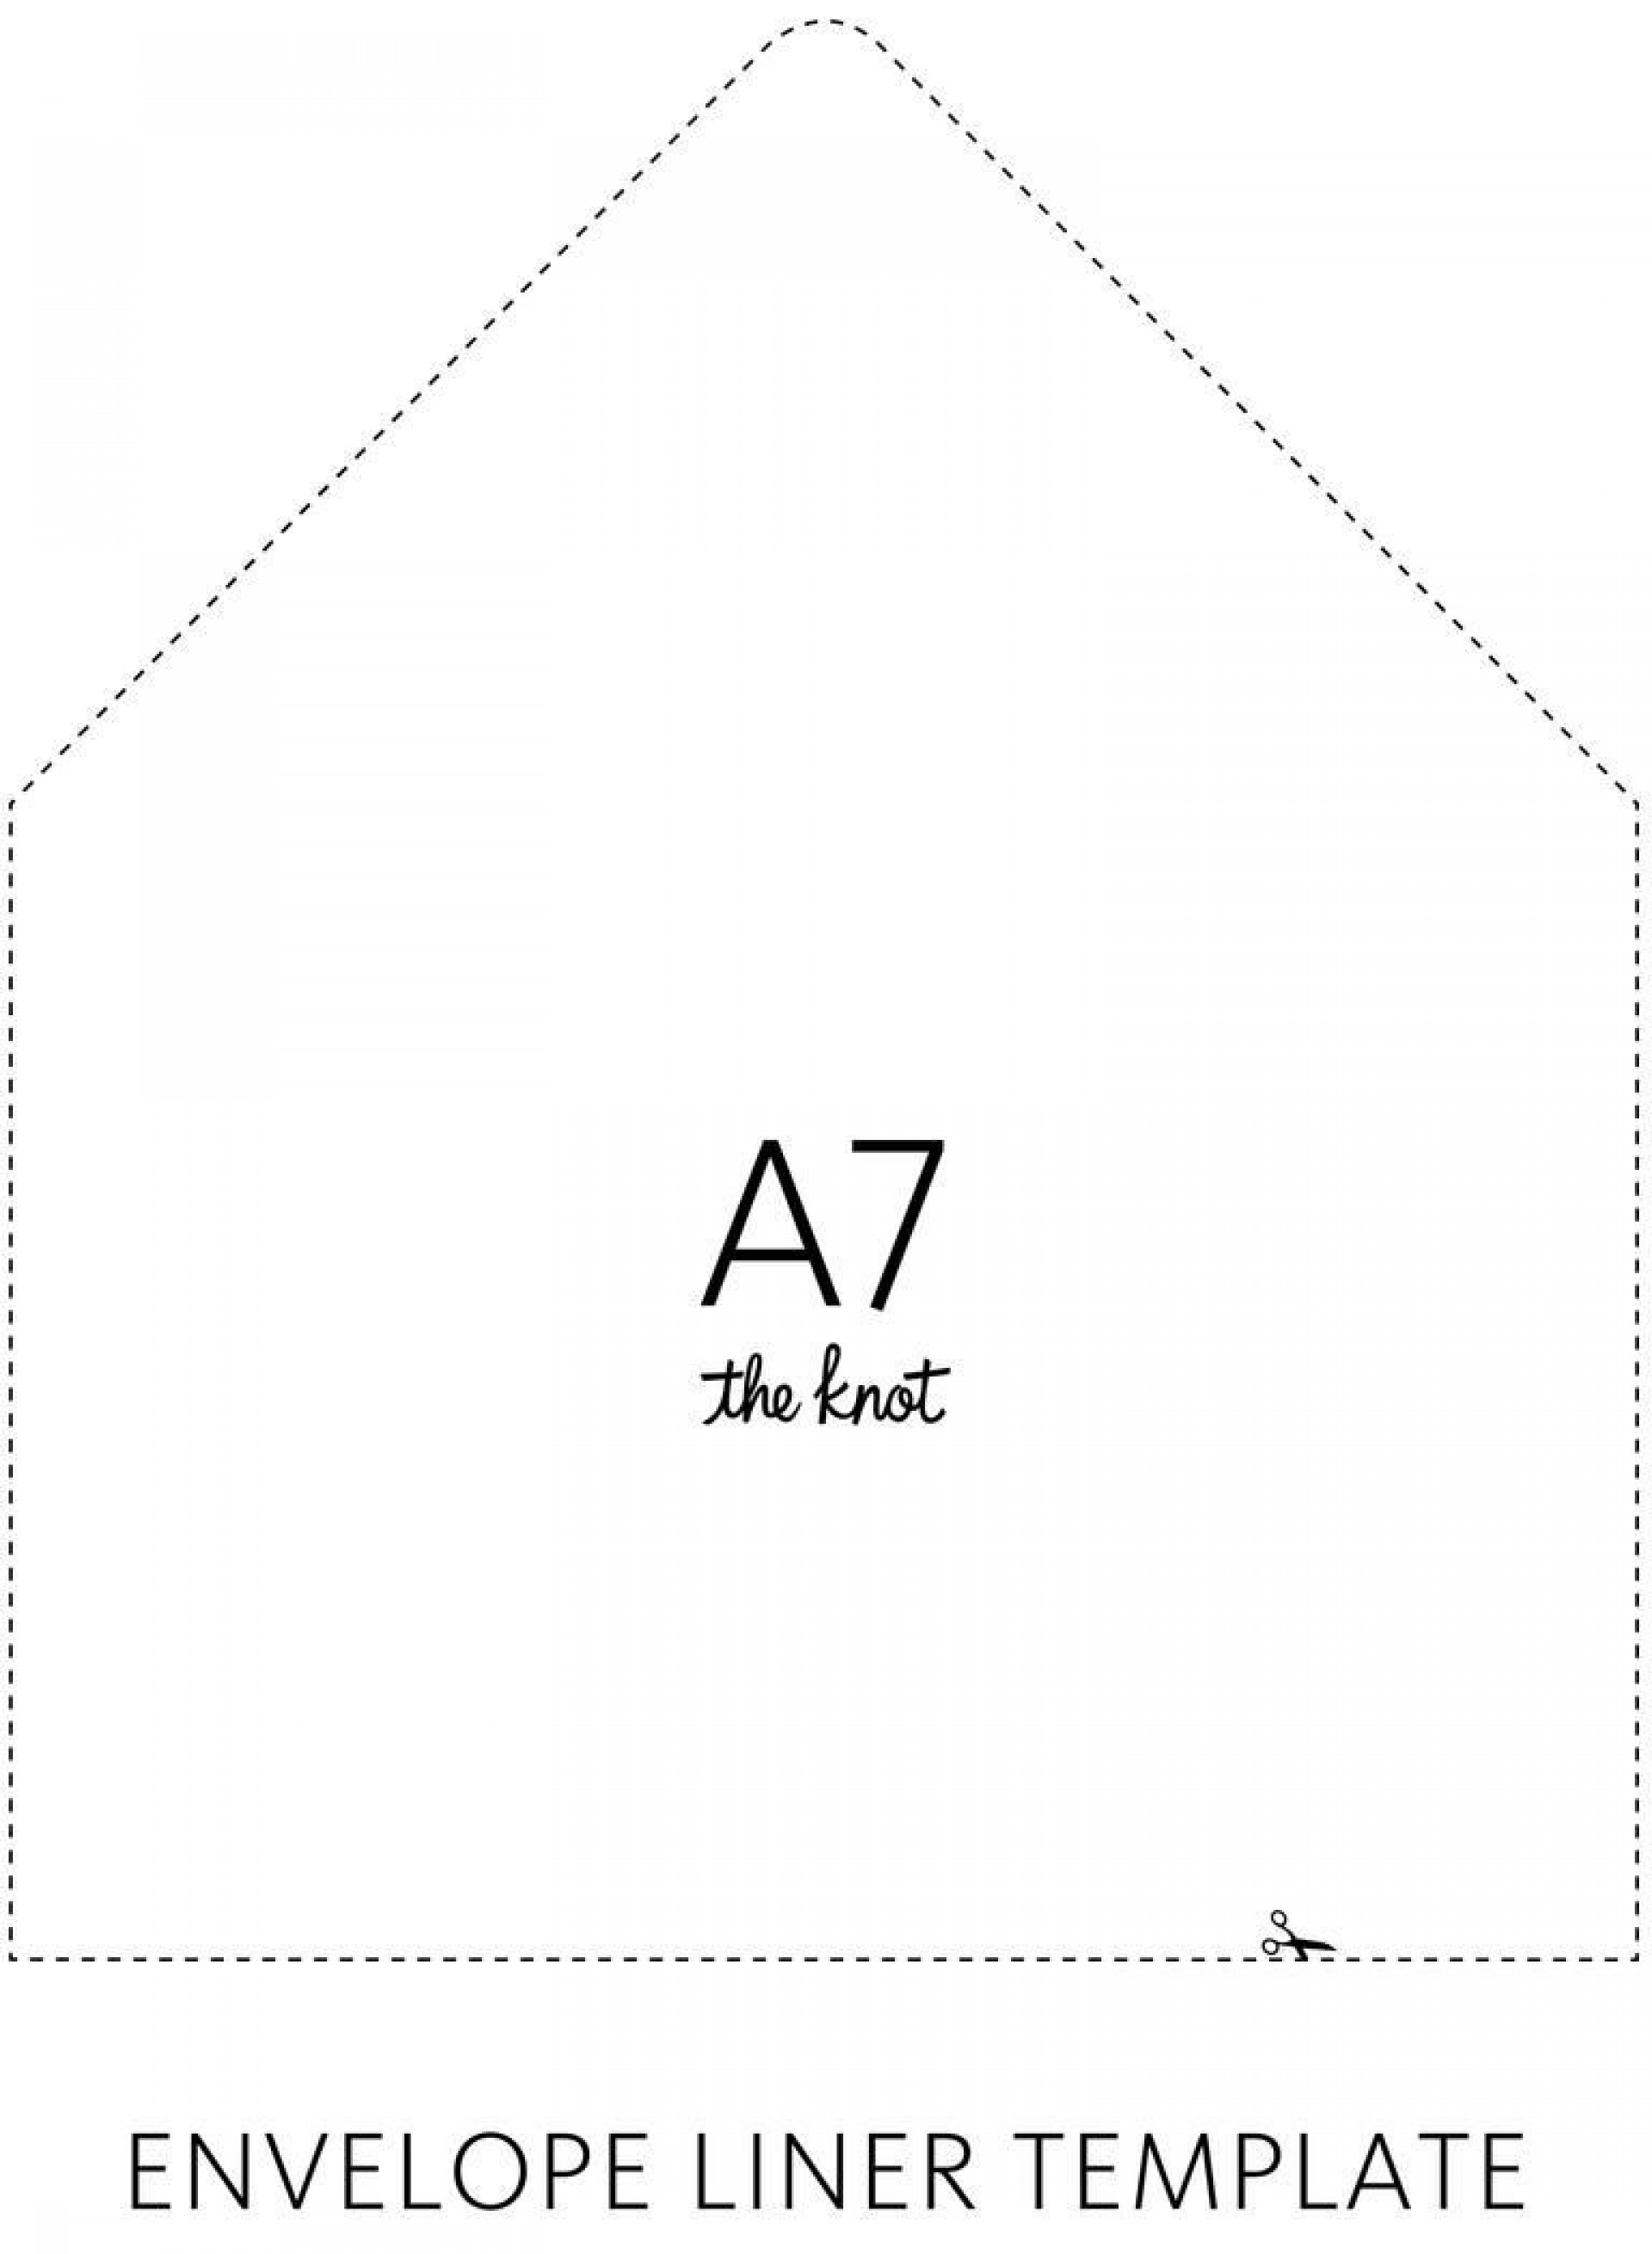 001 Remarkable A7 Square Flap Envelope Liner Template Highest Clarity 1920